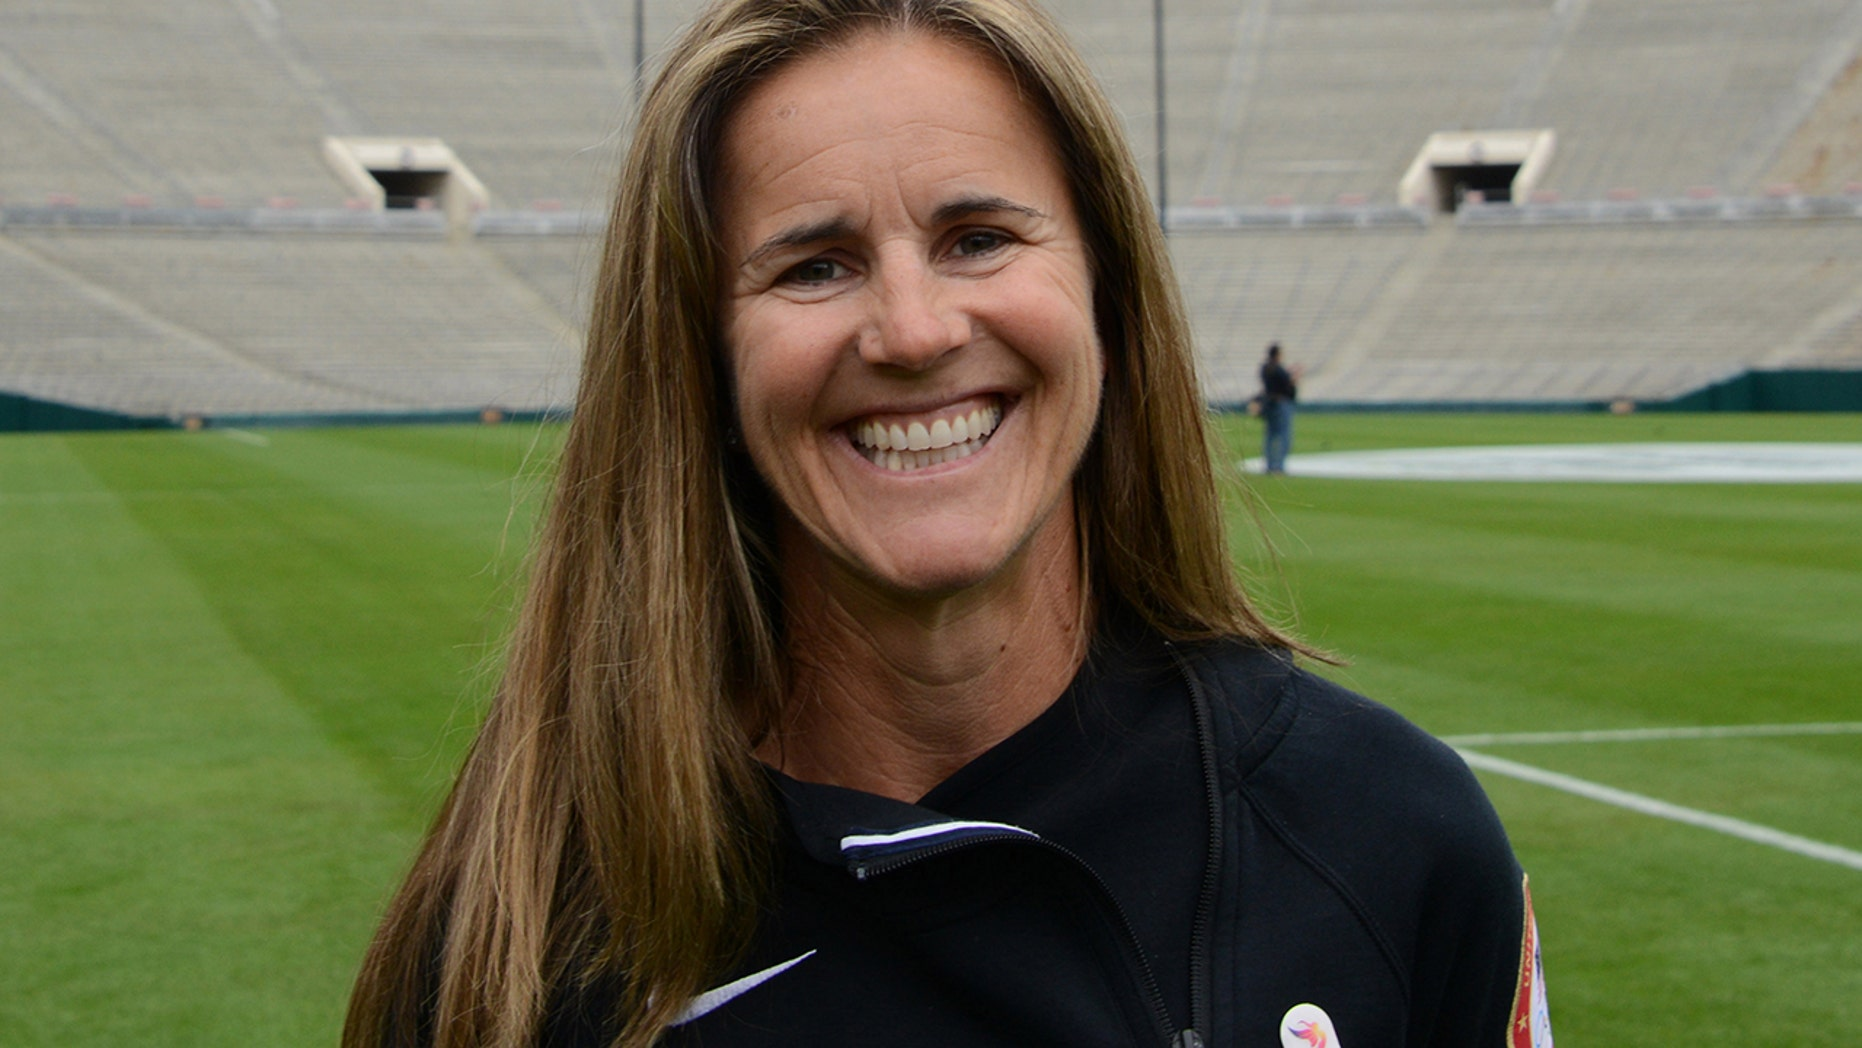 Forum on this topic: David Bowie (1947?016), brandi-chastain/